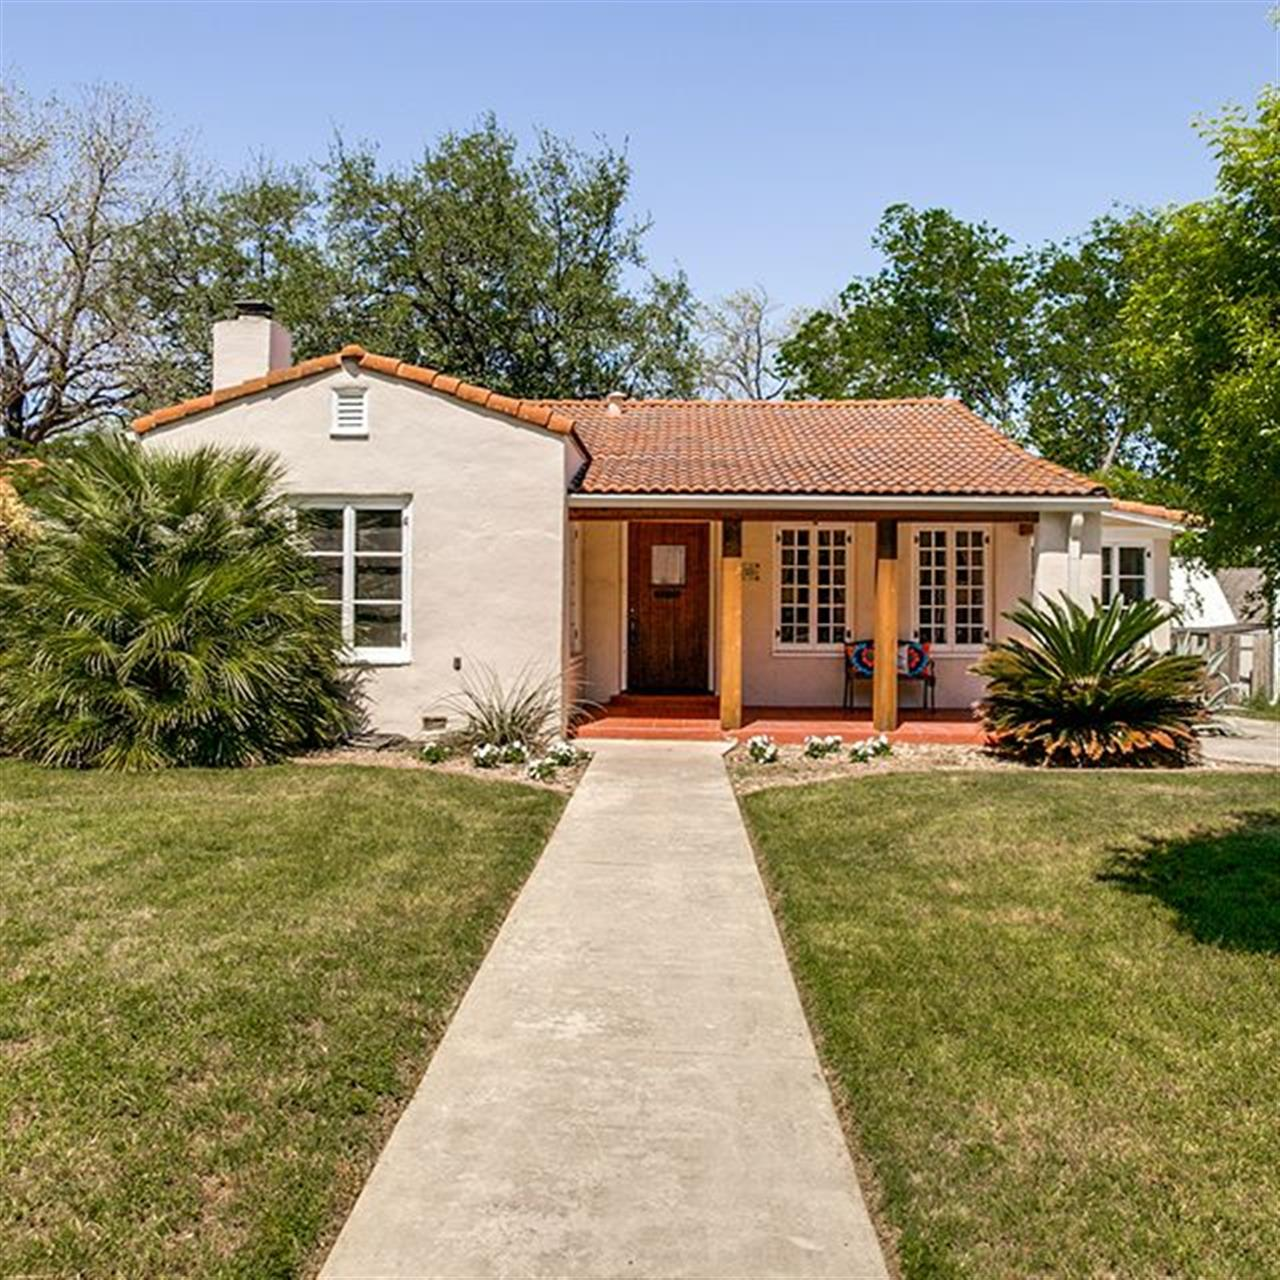 Luxury of the Day: 229 W. Hollywood Ave. in #MonteVista. This Spanish-style cottage is a true delight with hardwood floors, an island kitchen, a charming breakfast room and updated baths.